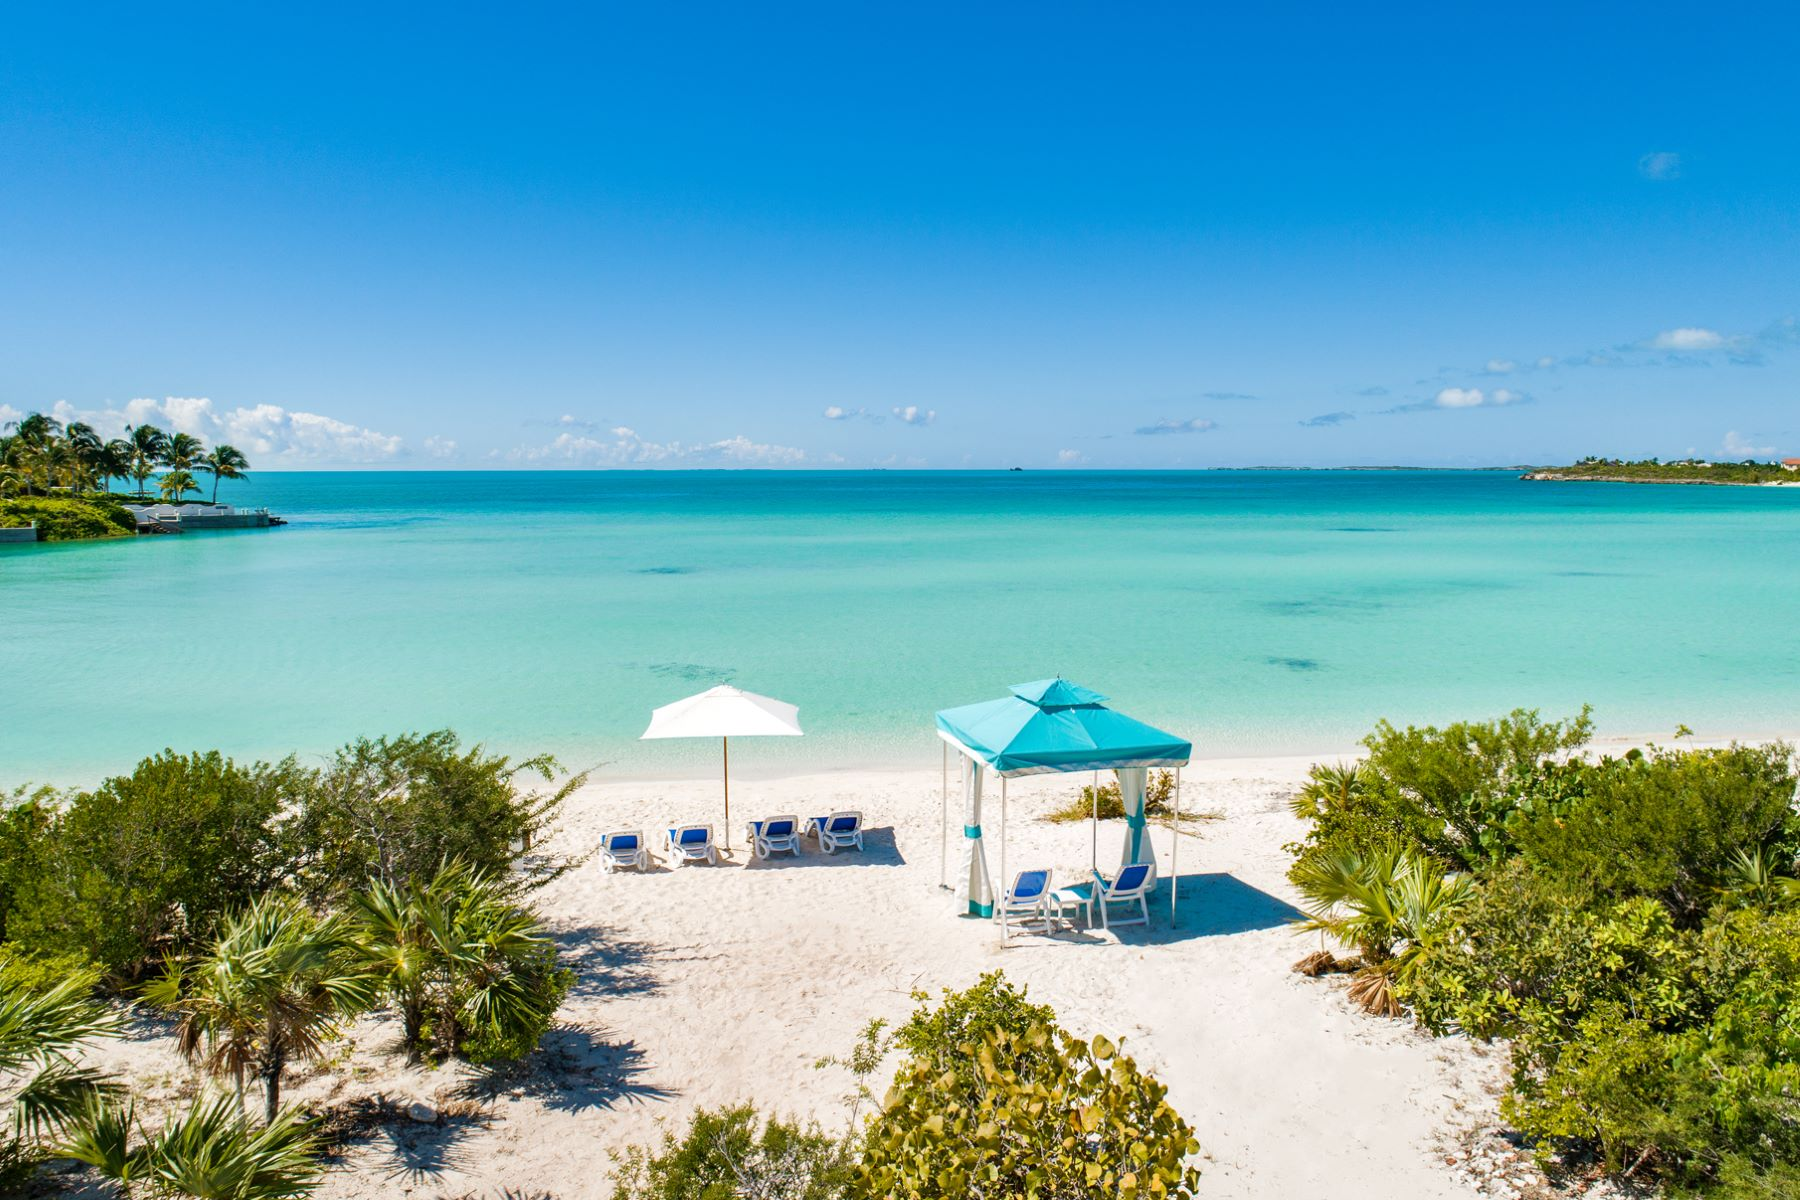 Additional photo for property listing at The Beach House The Beach House, Sunset Bay Drive Taylor Bay, Providenciales TCI Turks And Caicos Islands